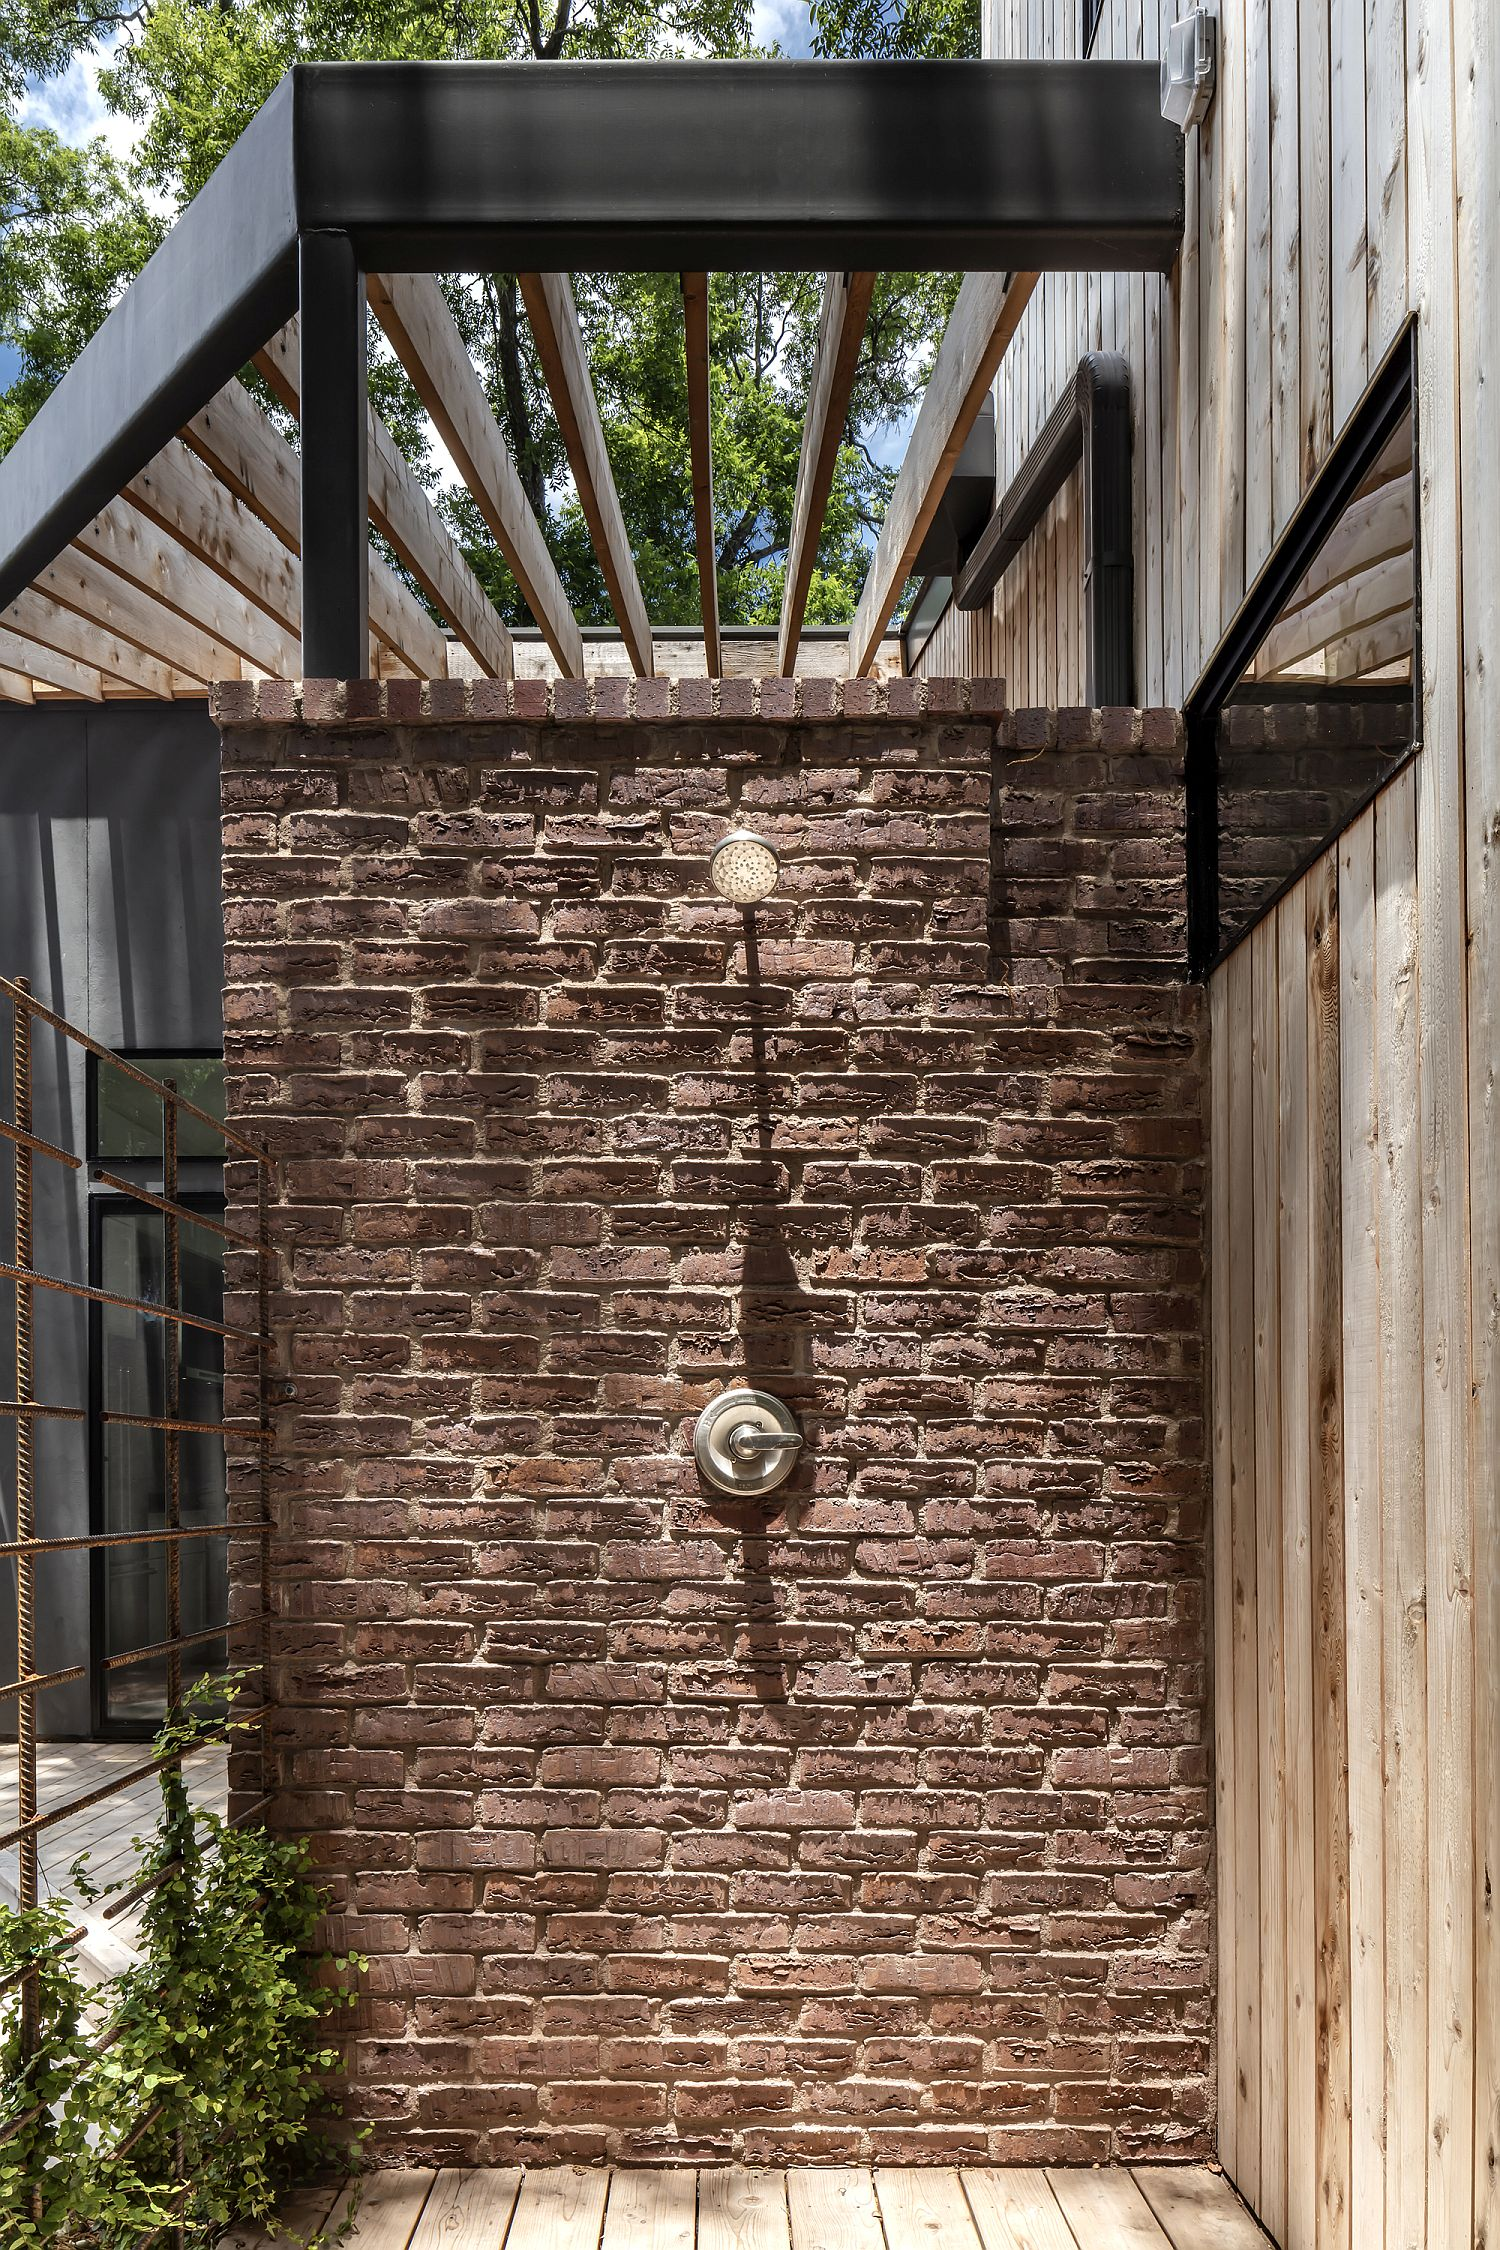 Brick wall sections of the house give it a timeless appeal